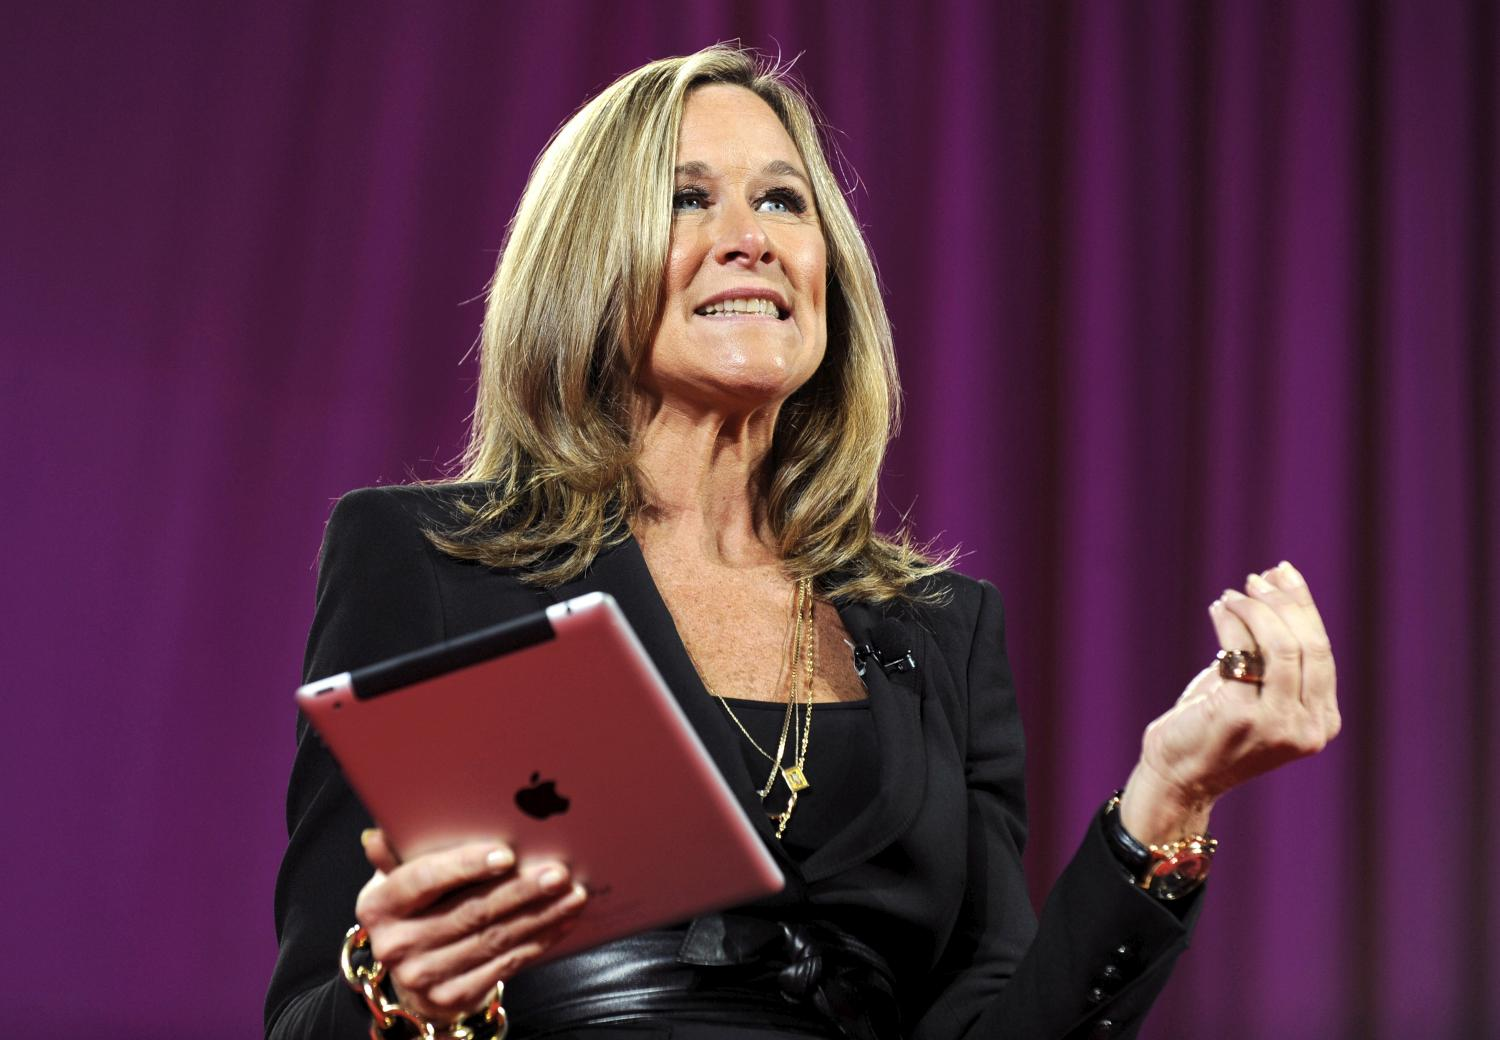 Angela Ahrendts, former Burberry CEO and new Apple retail SVP, seen holding an iPad in 2013